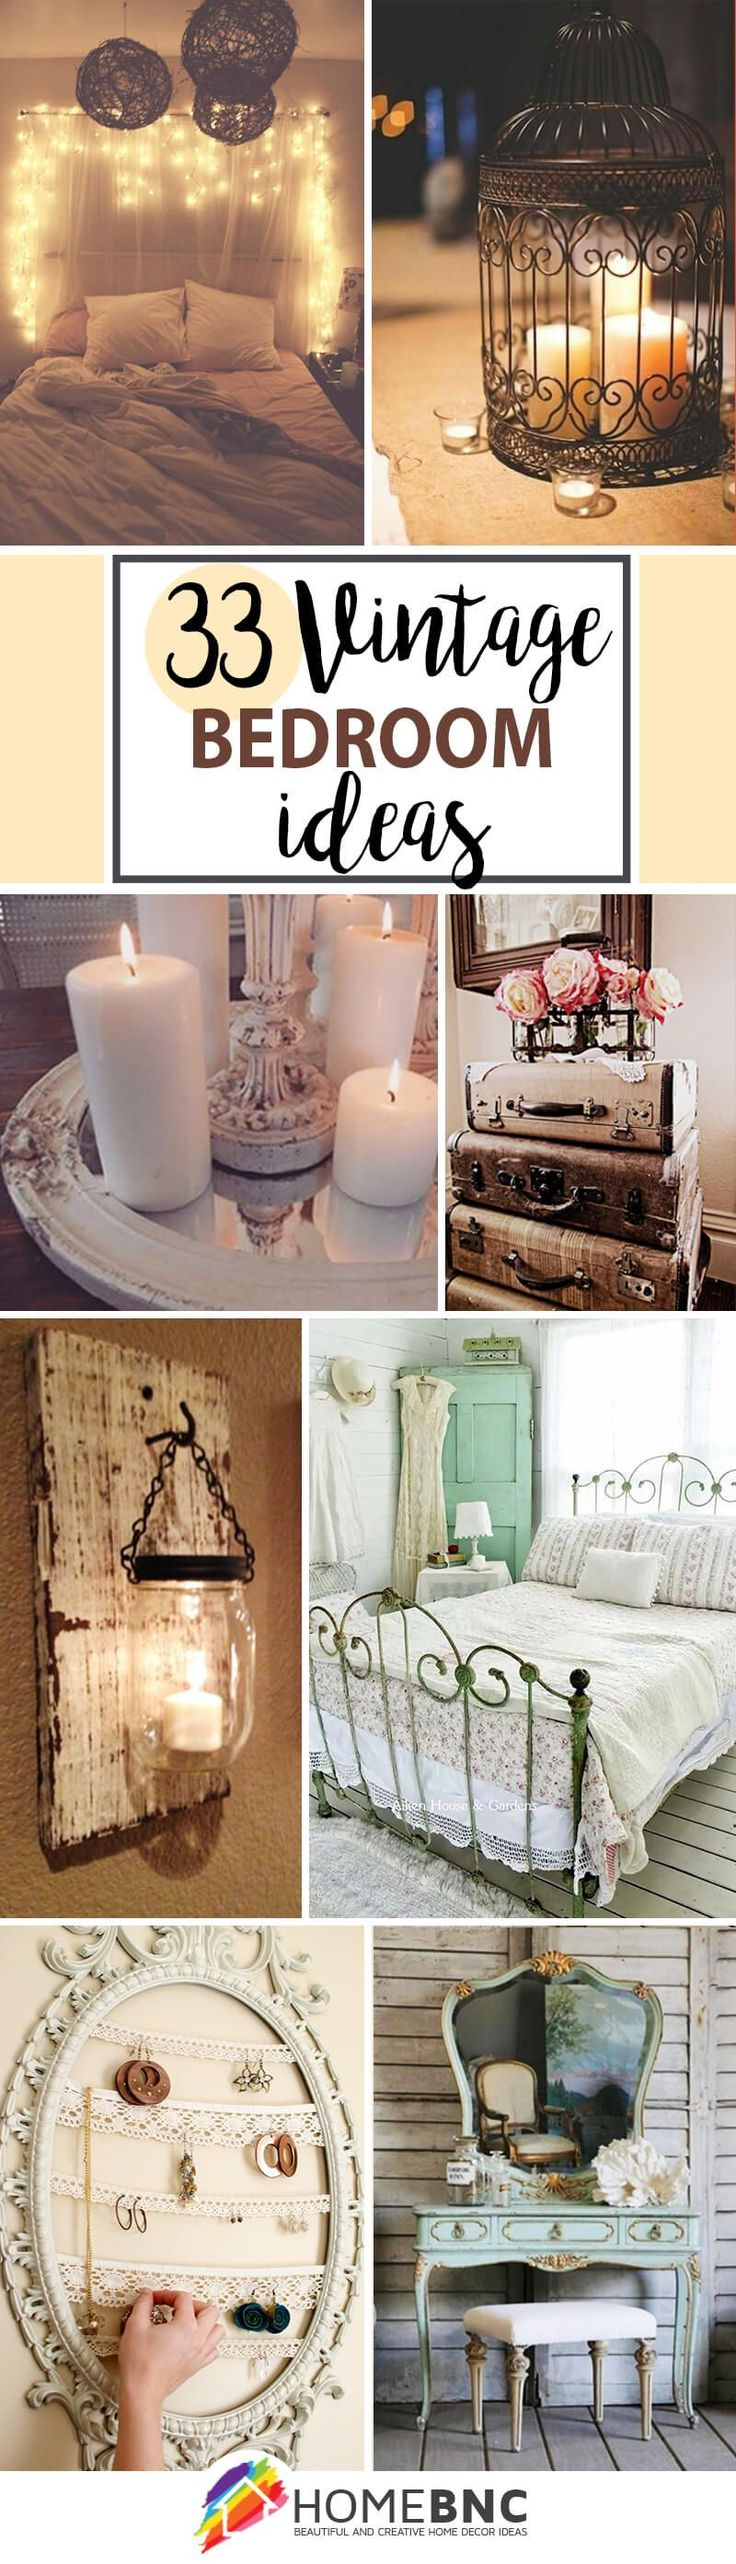 best 25+ vintage room decorations ideas on pinterest | cheap dorm